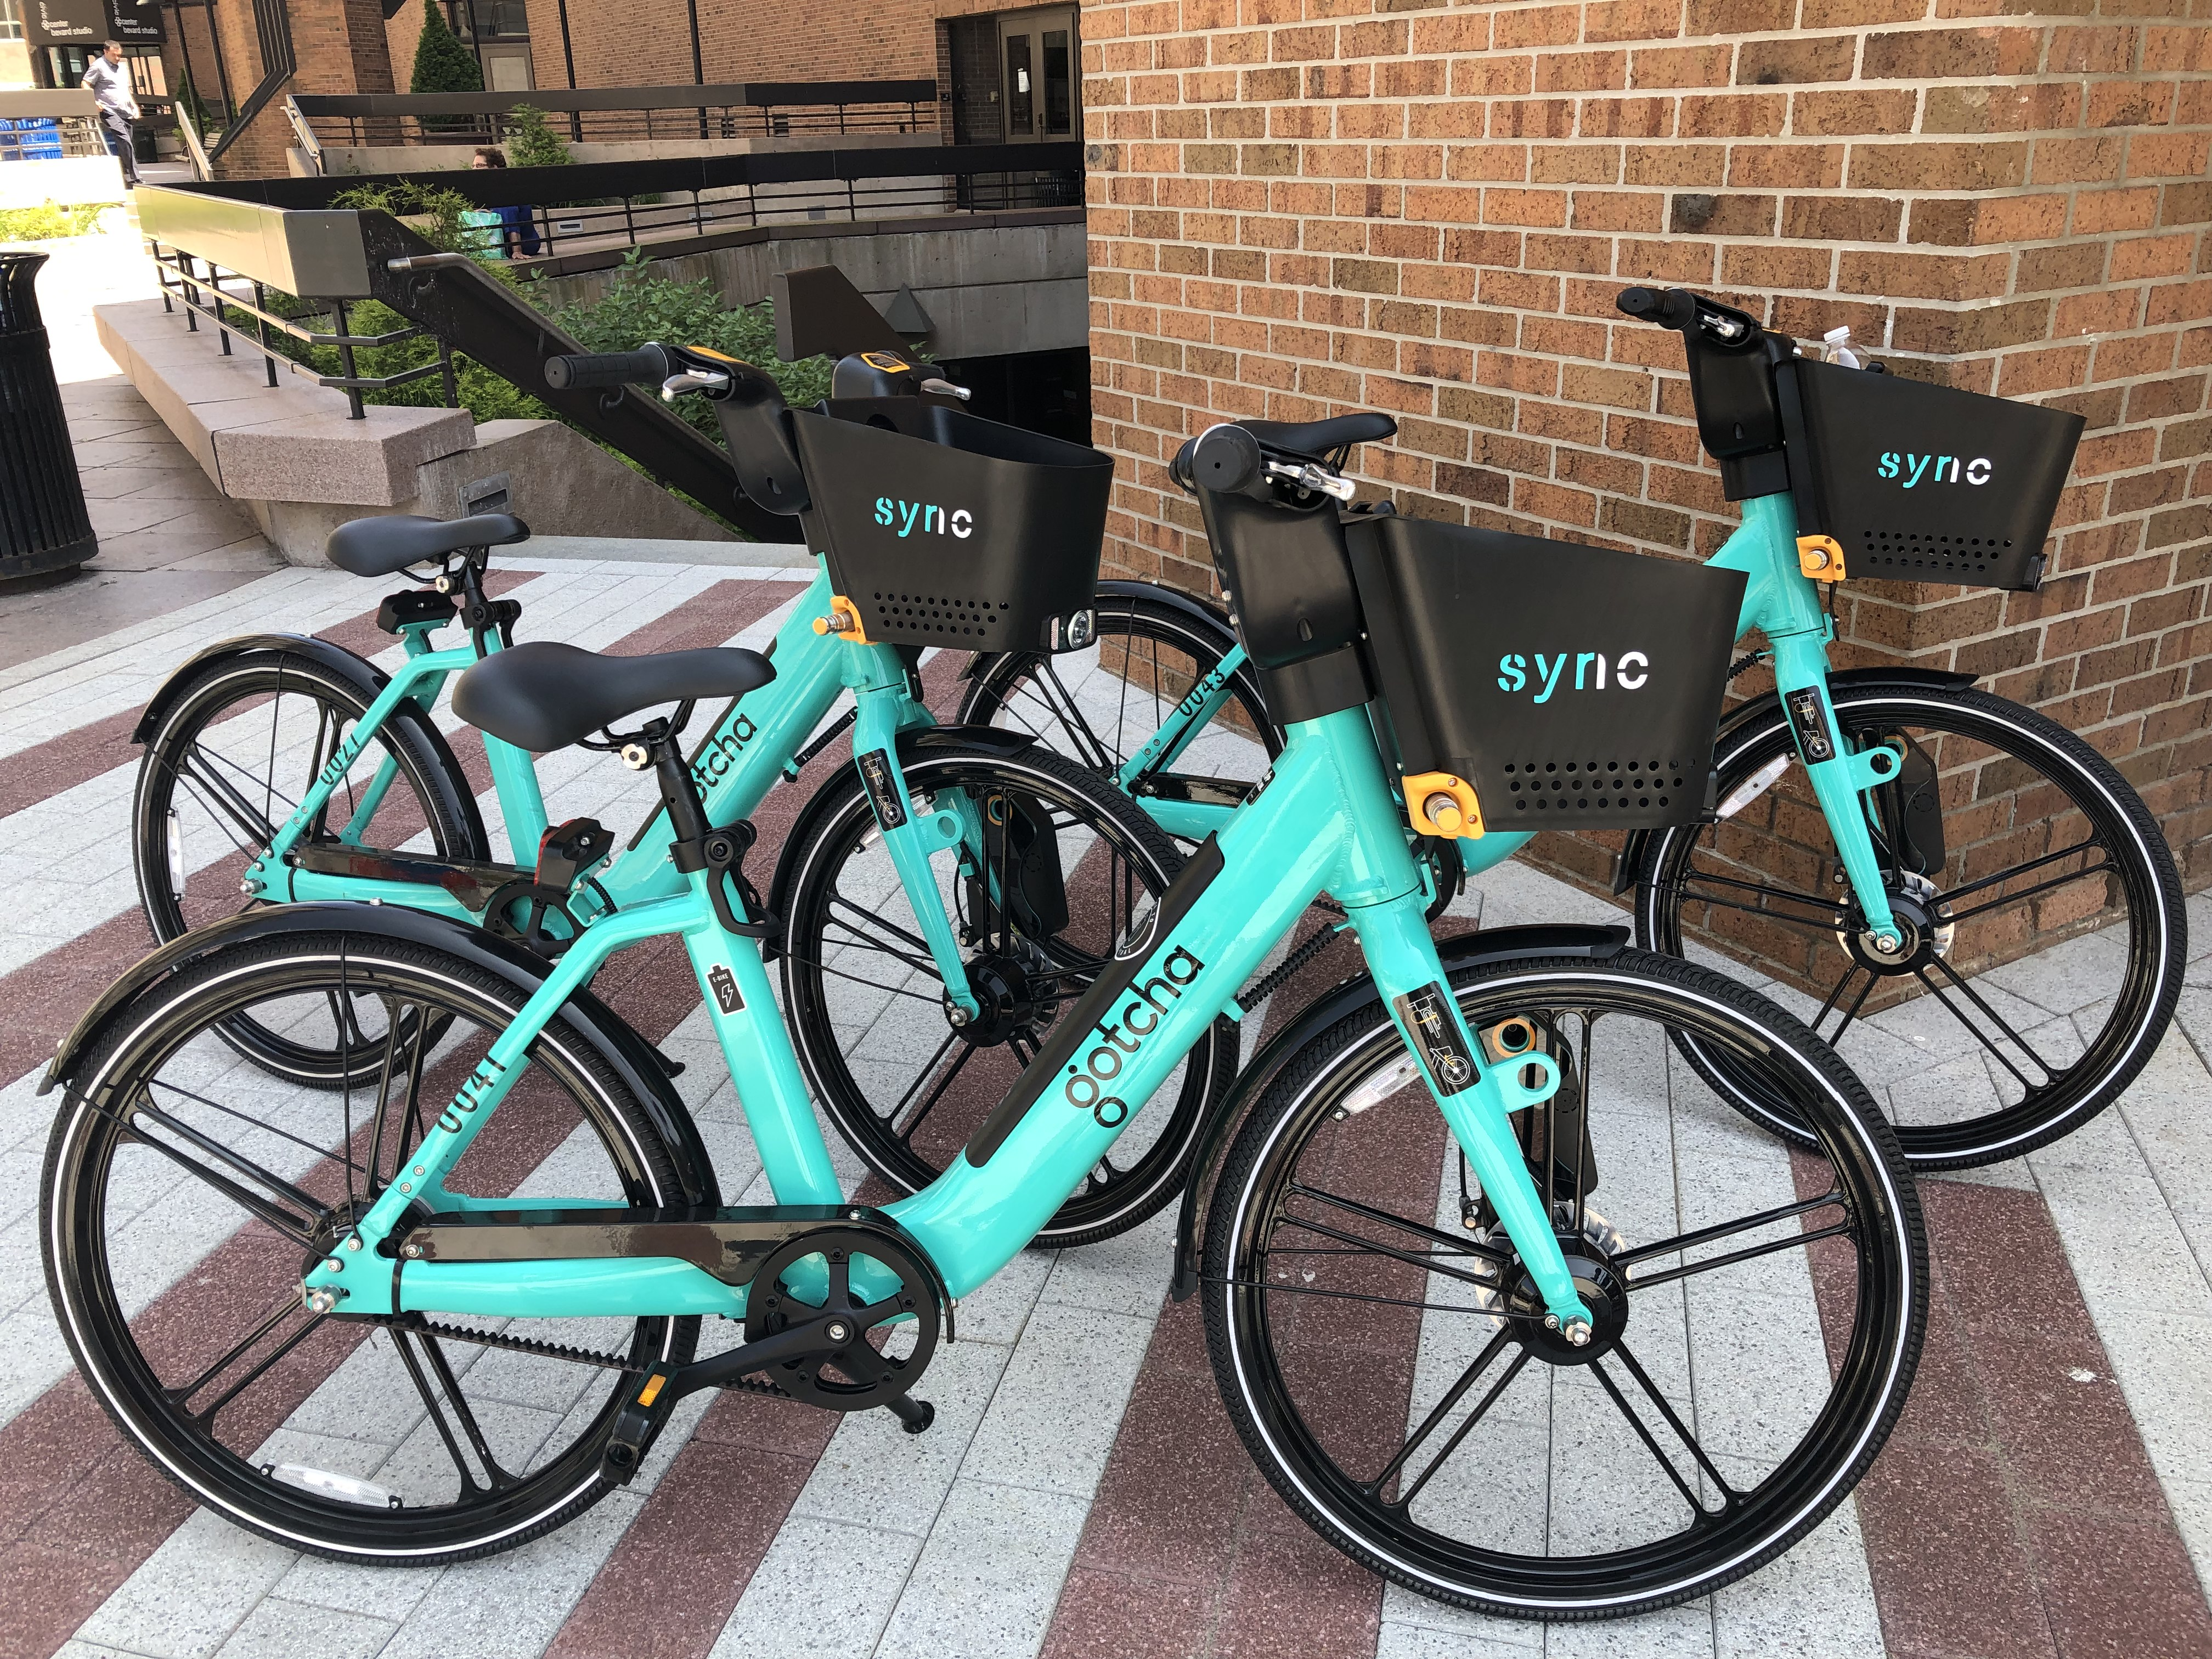 Syracuse's public bikes back in service, free to ride Friday